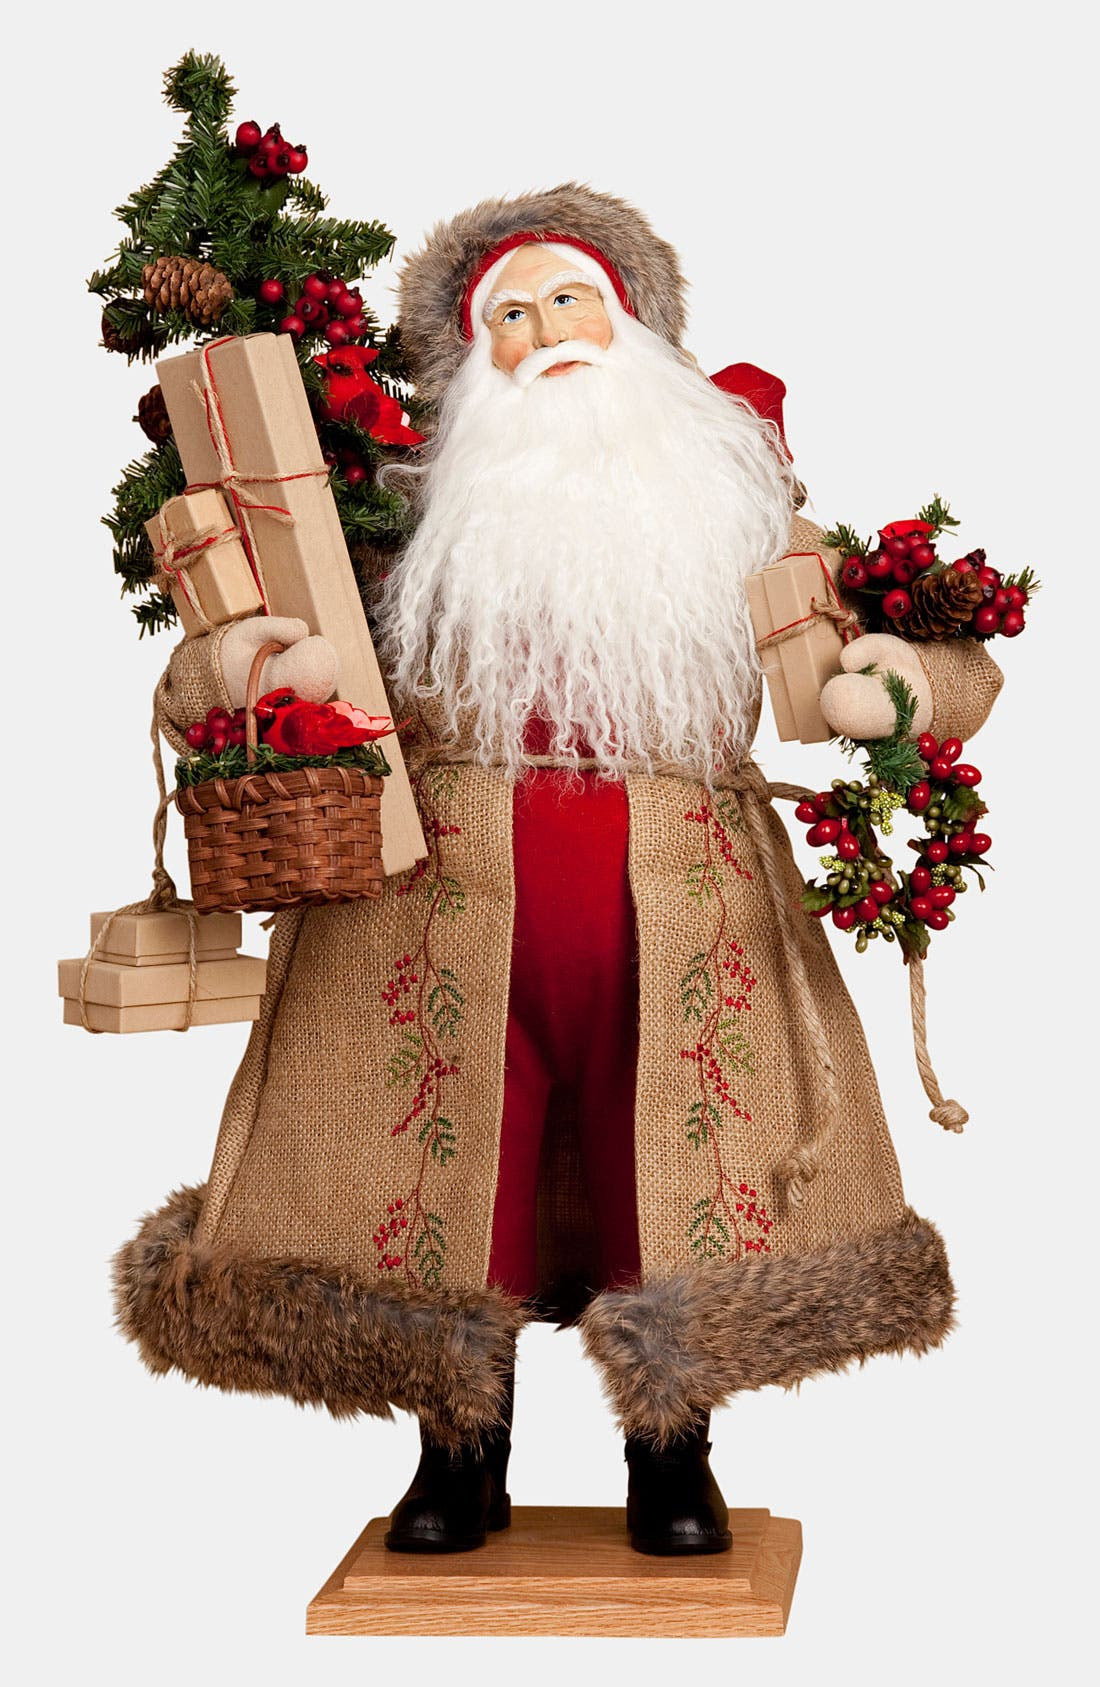 Alternate Image 1 Selected - Lynn Haney 'Countryside Holiday' Santa Figurine